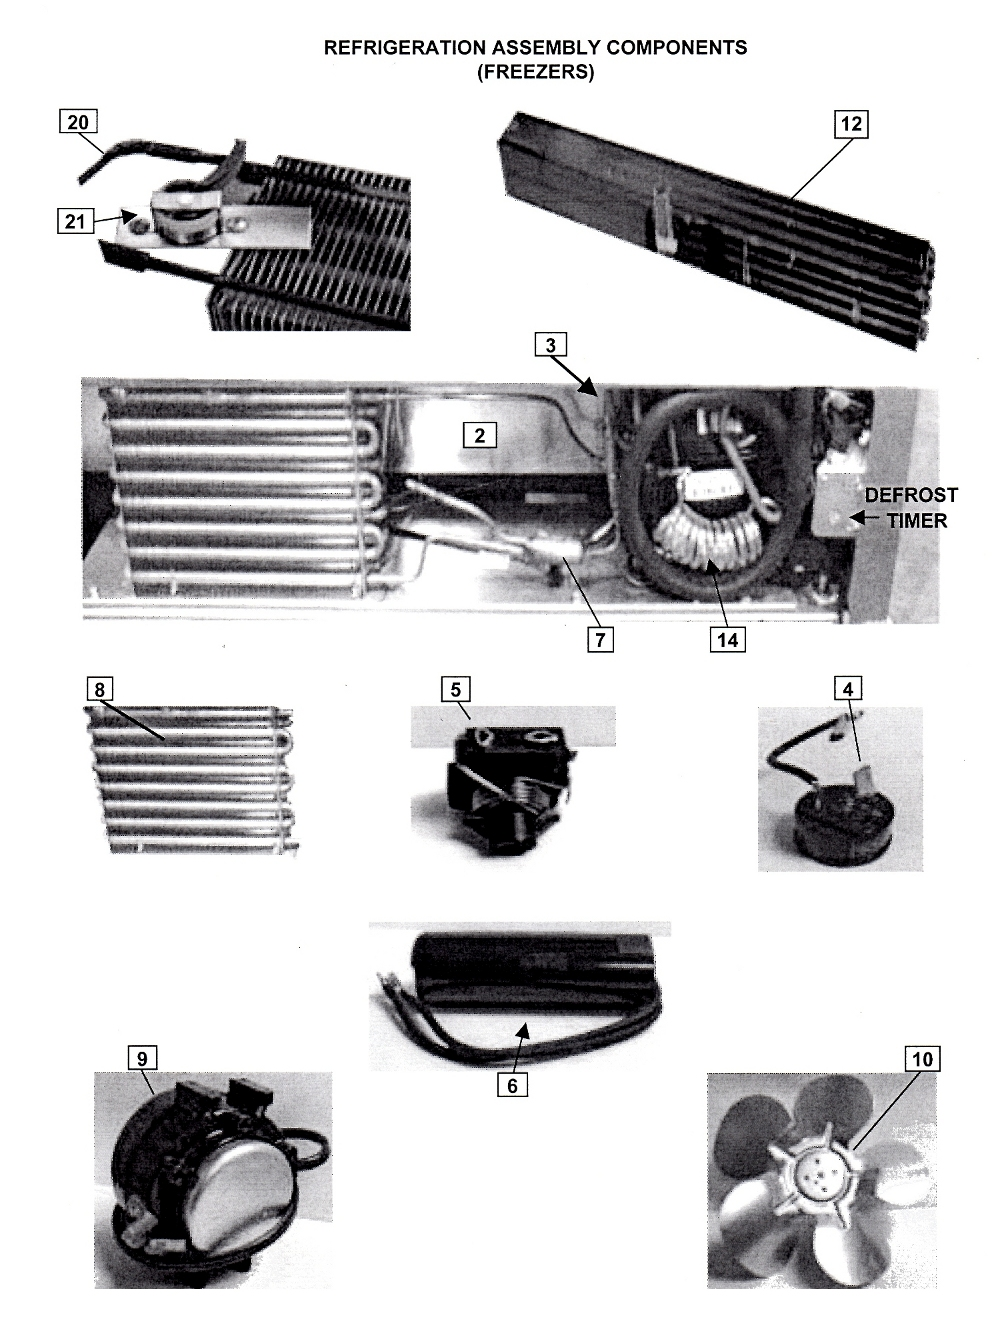 Refrigeration Assembly Components